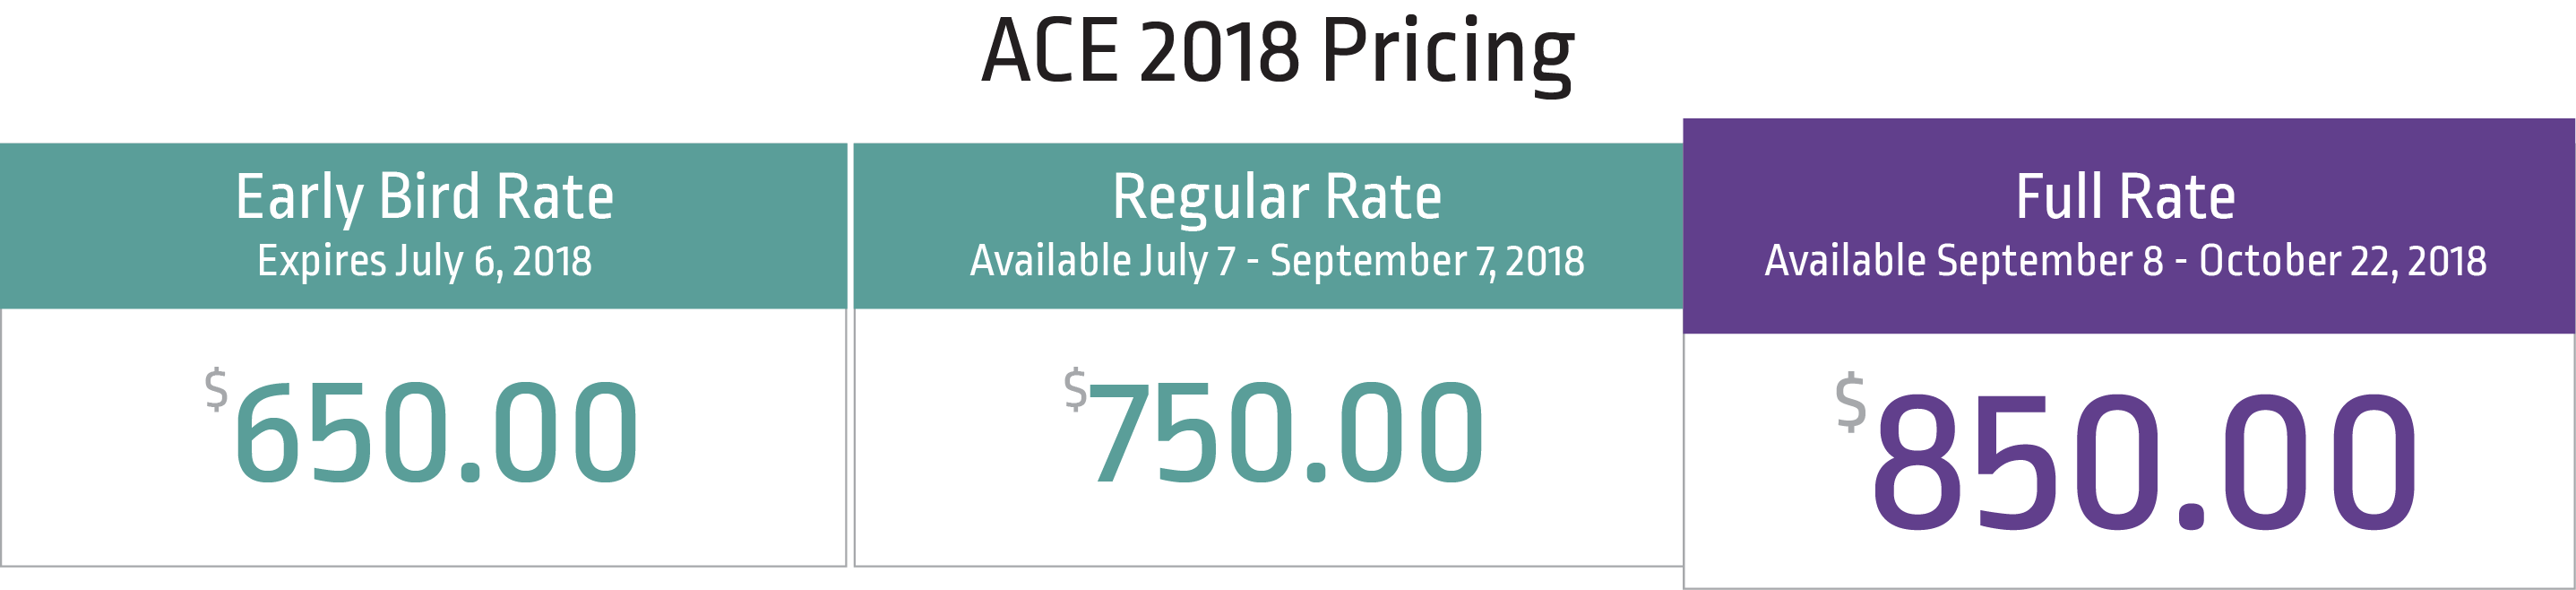 PricingTable3